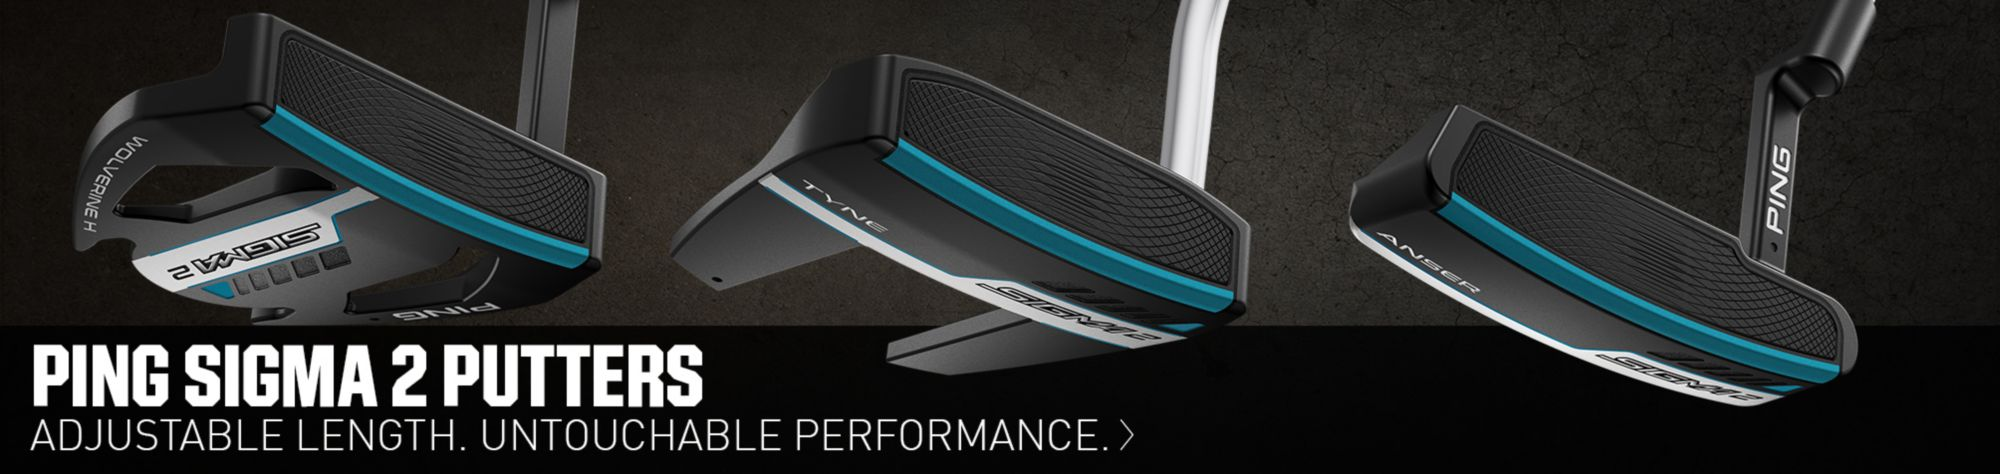 New Ping Sigma 2 Putter - Shop Now